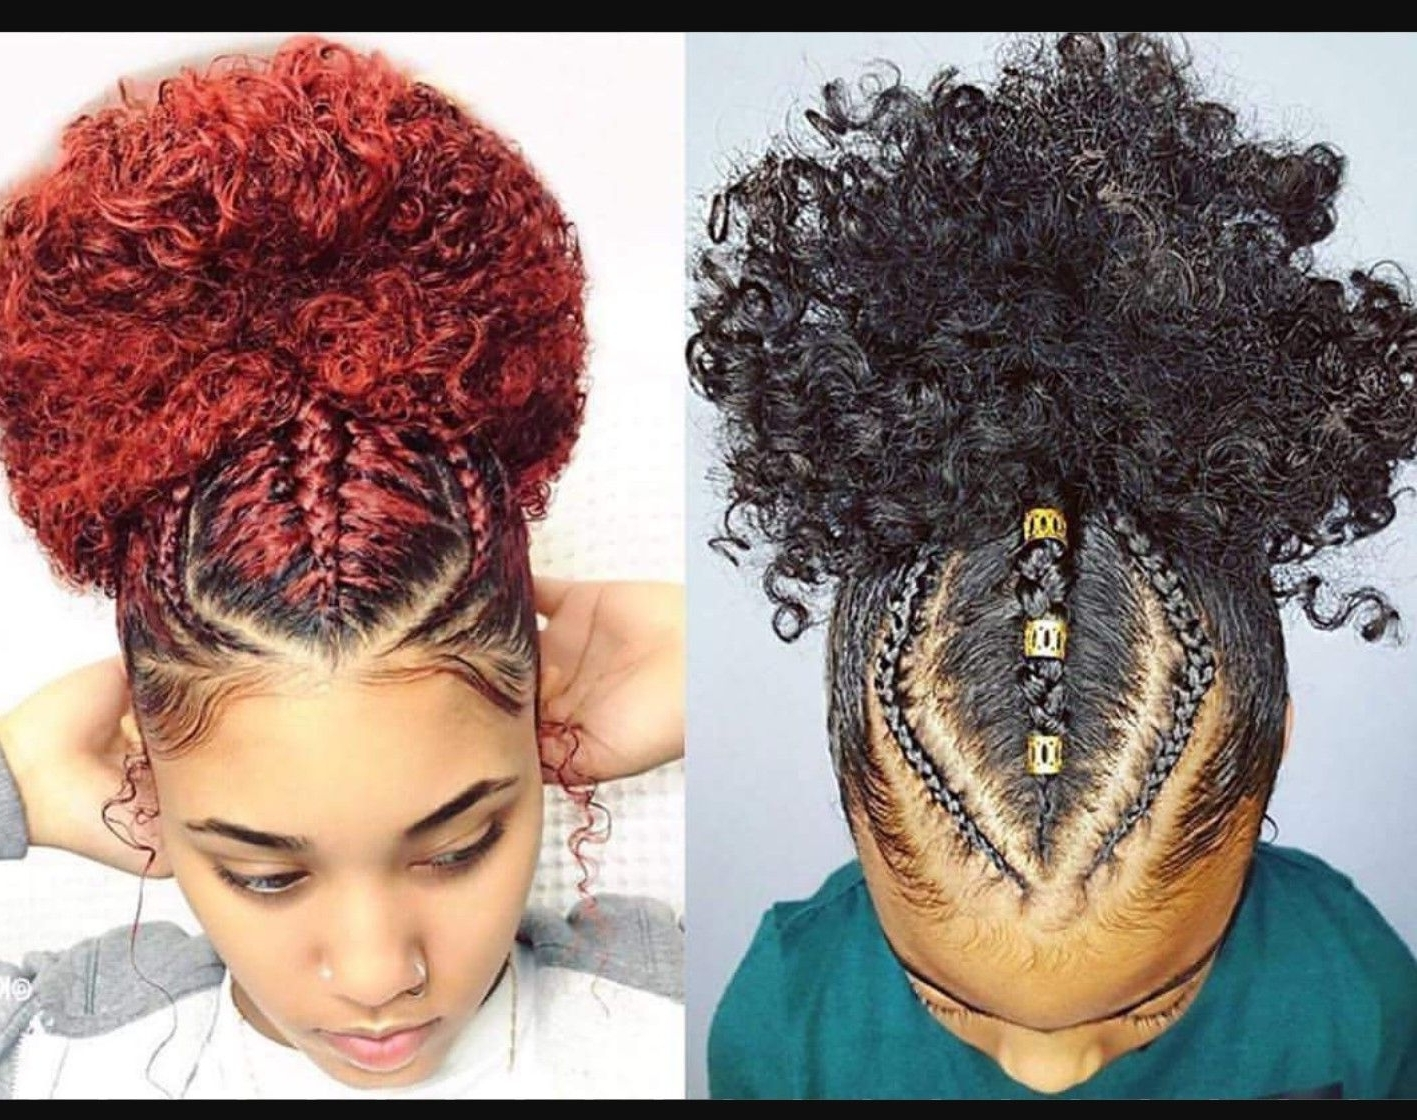 Black Girls Hairstyles With Regard To Best And Newest Cornrows Hairstyles For Natural African Hair (View 1 of 15)